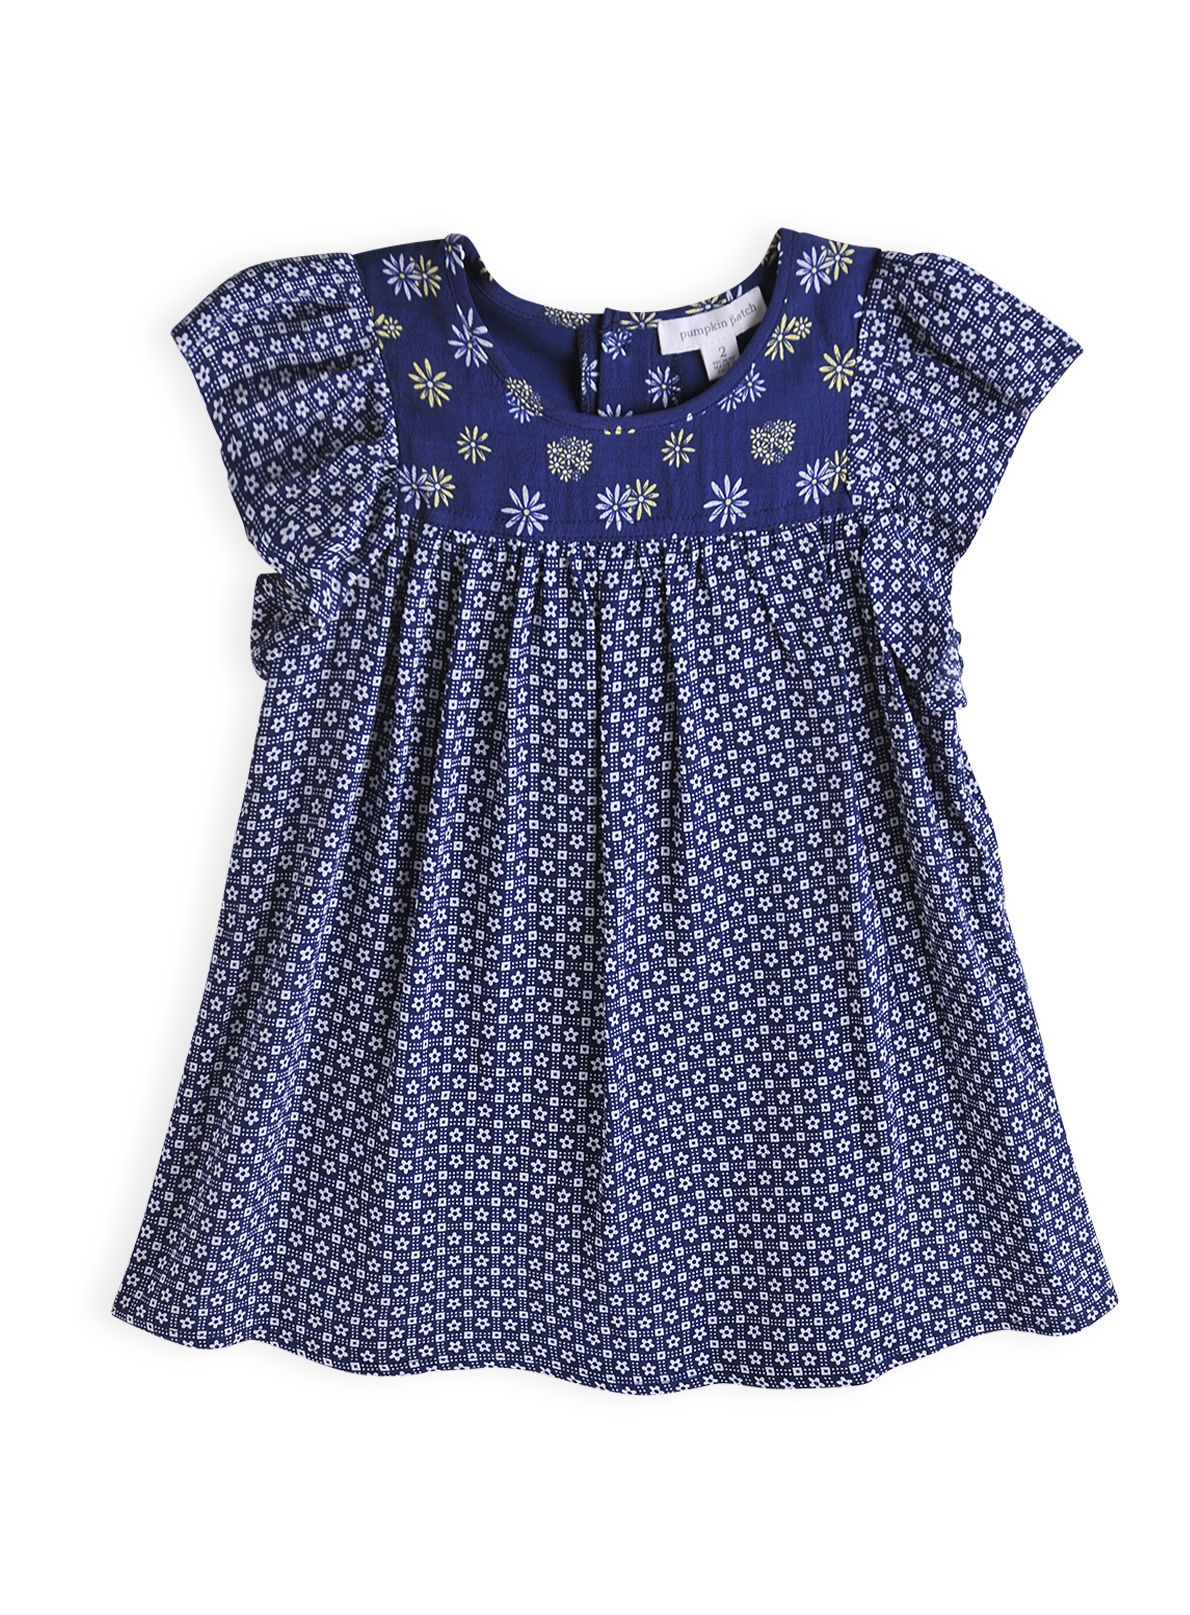 Girls daisy print babydoll dress